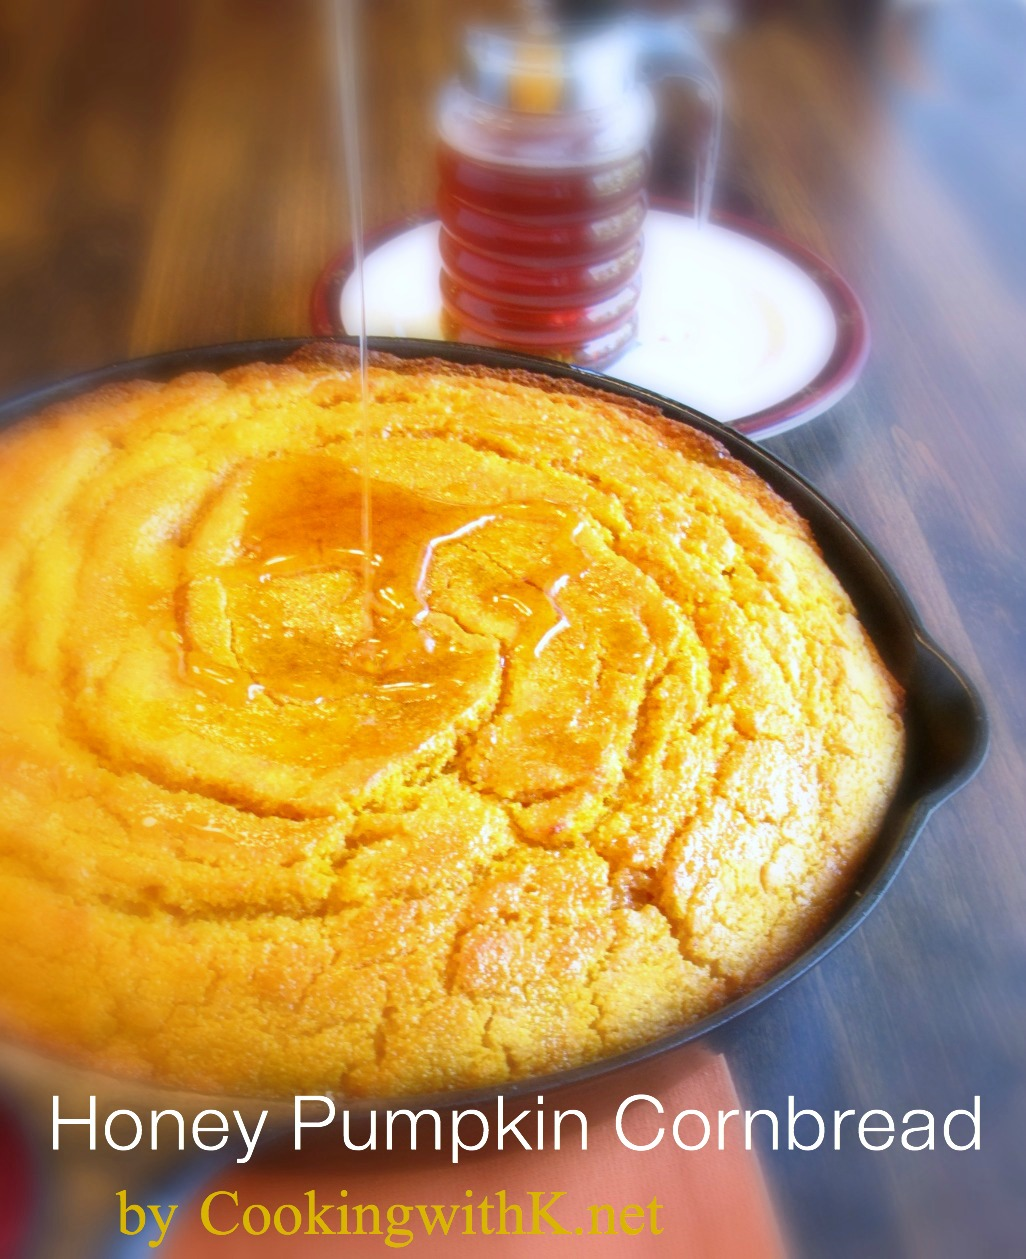 Cooking with K: Honey Pumpkin Cornbread